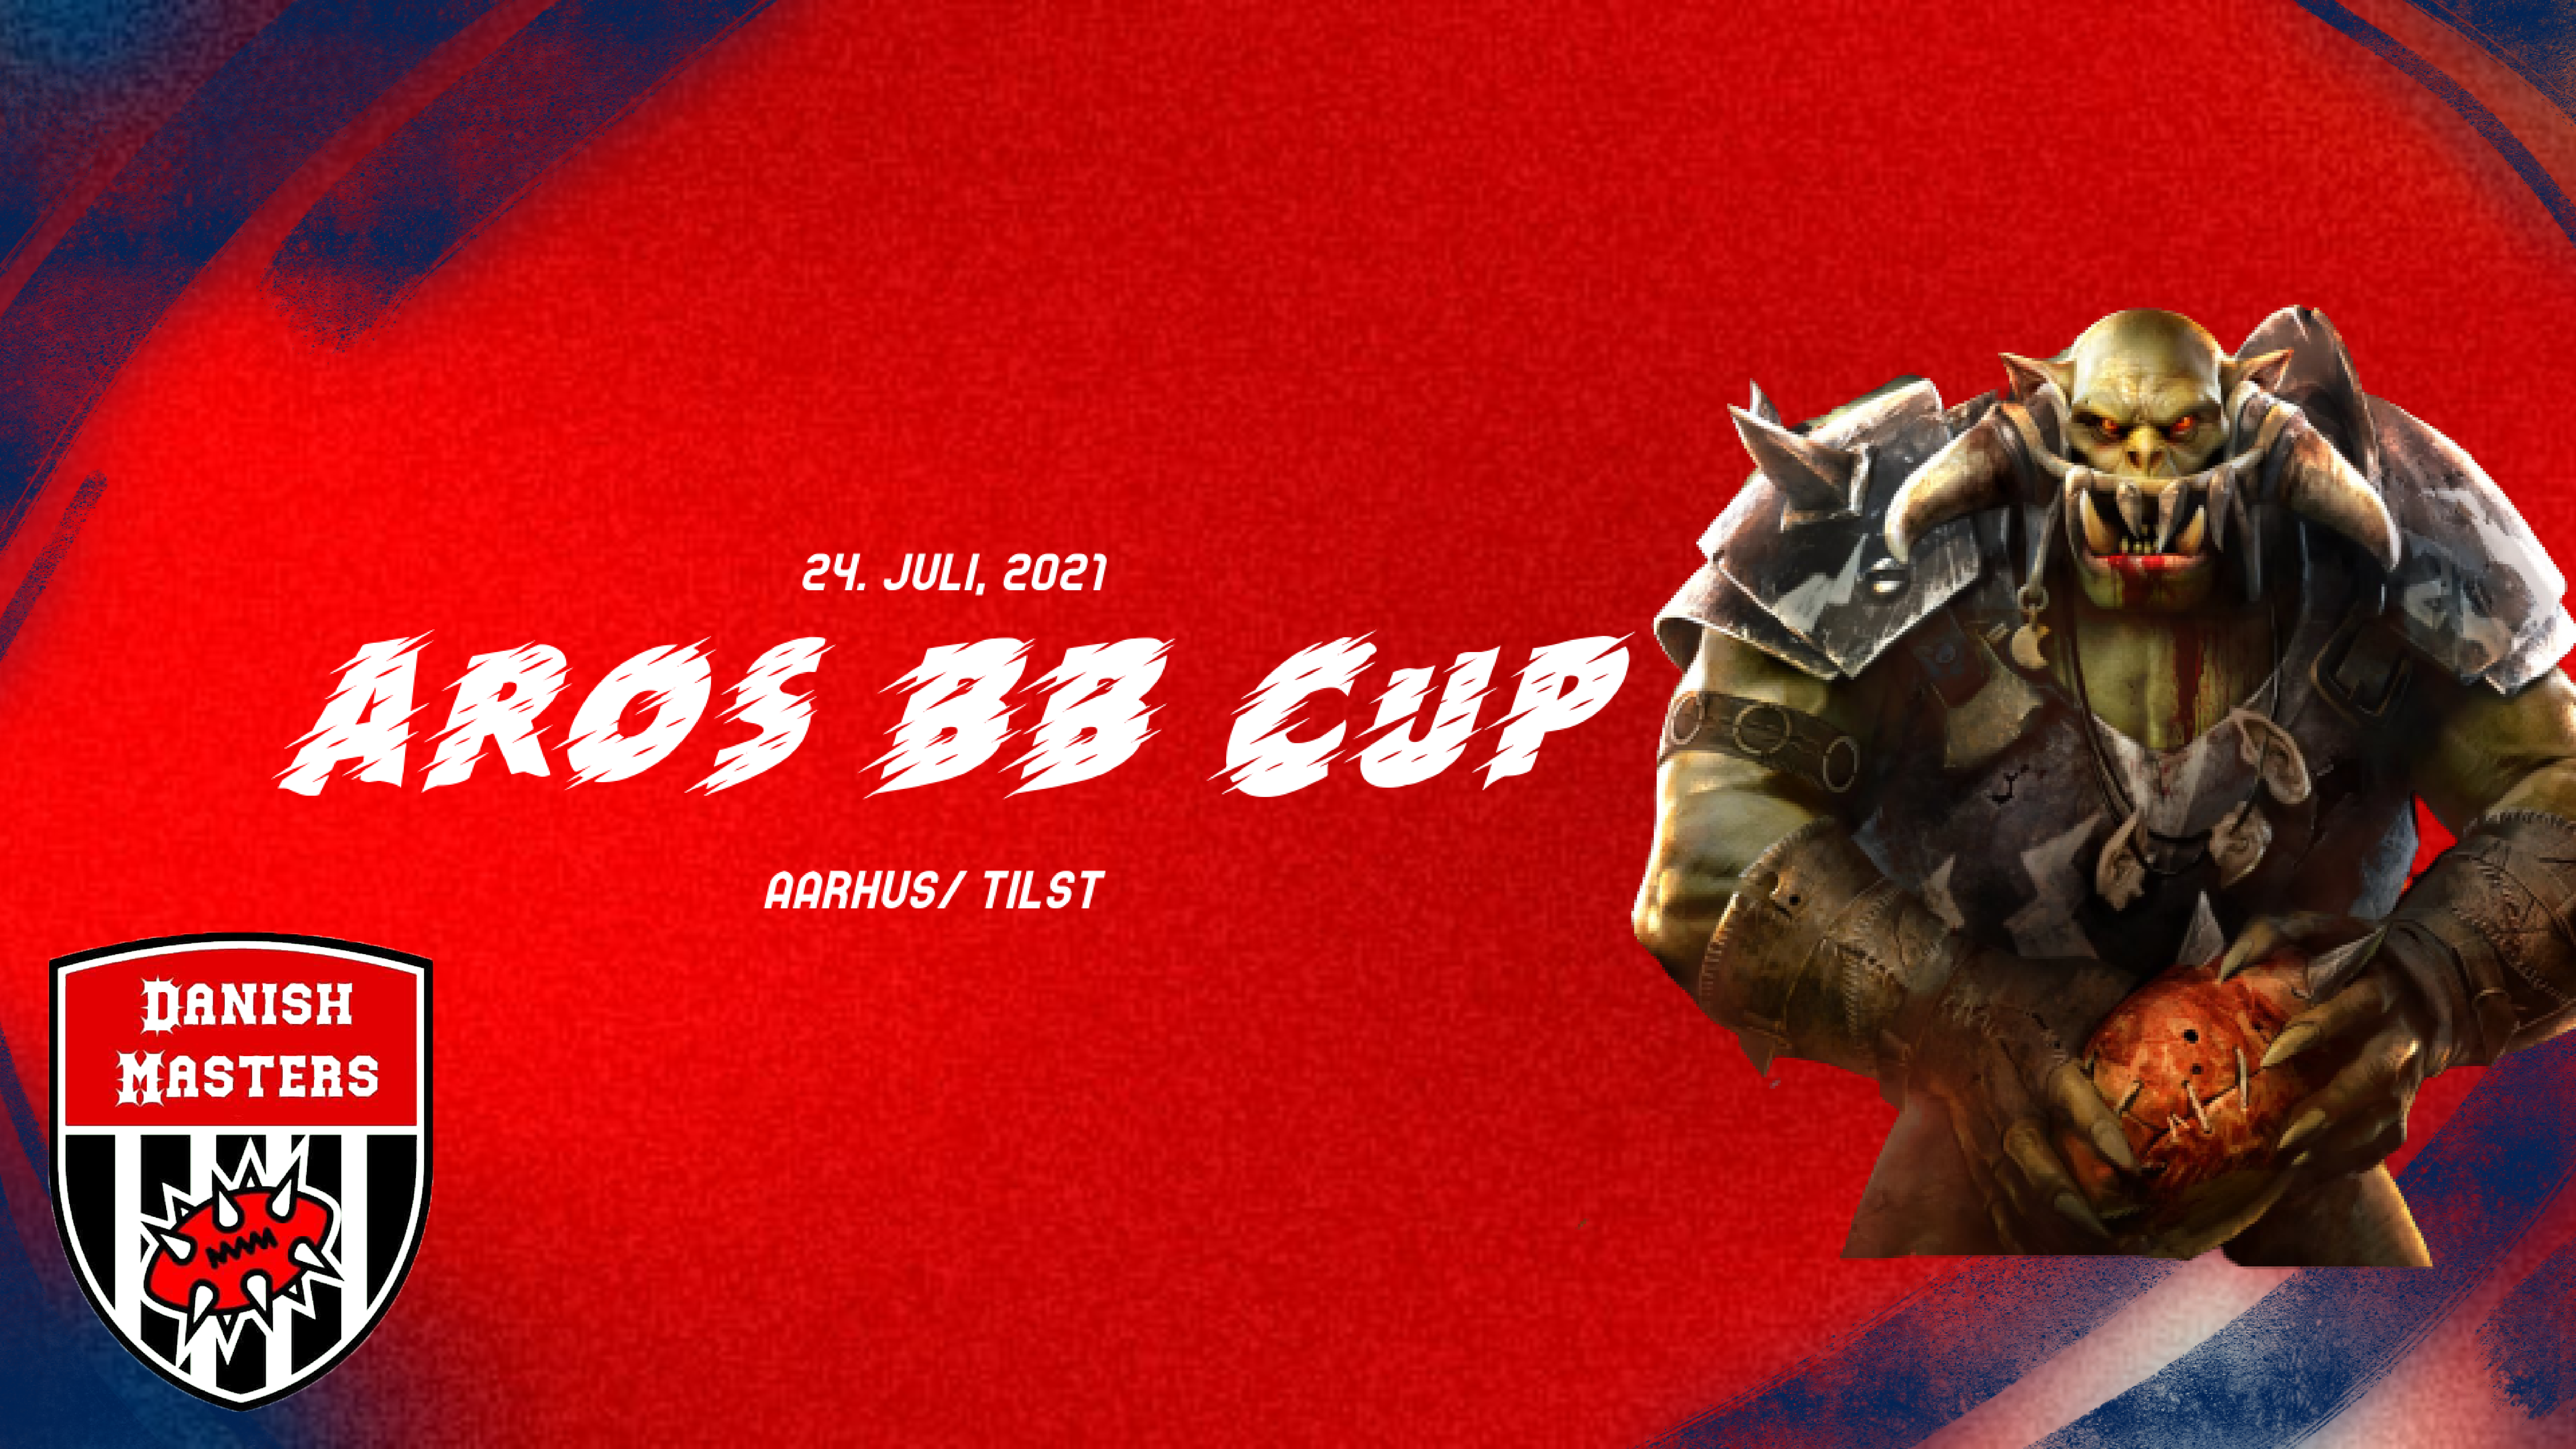 Aros BB Cup 2021